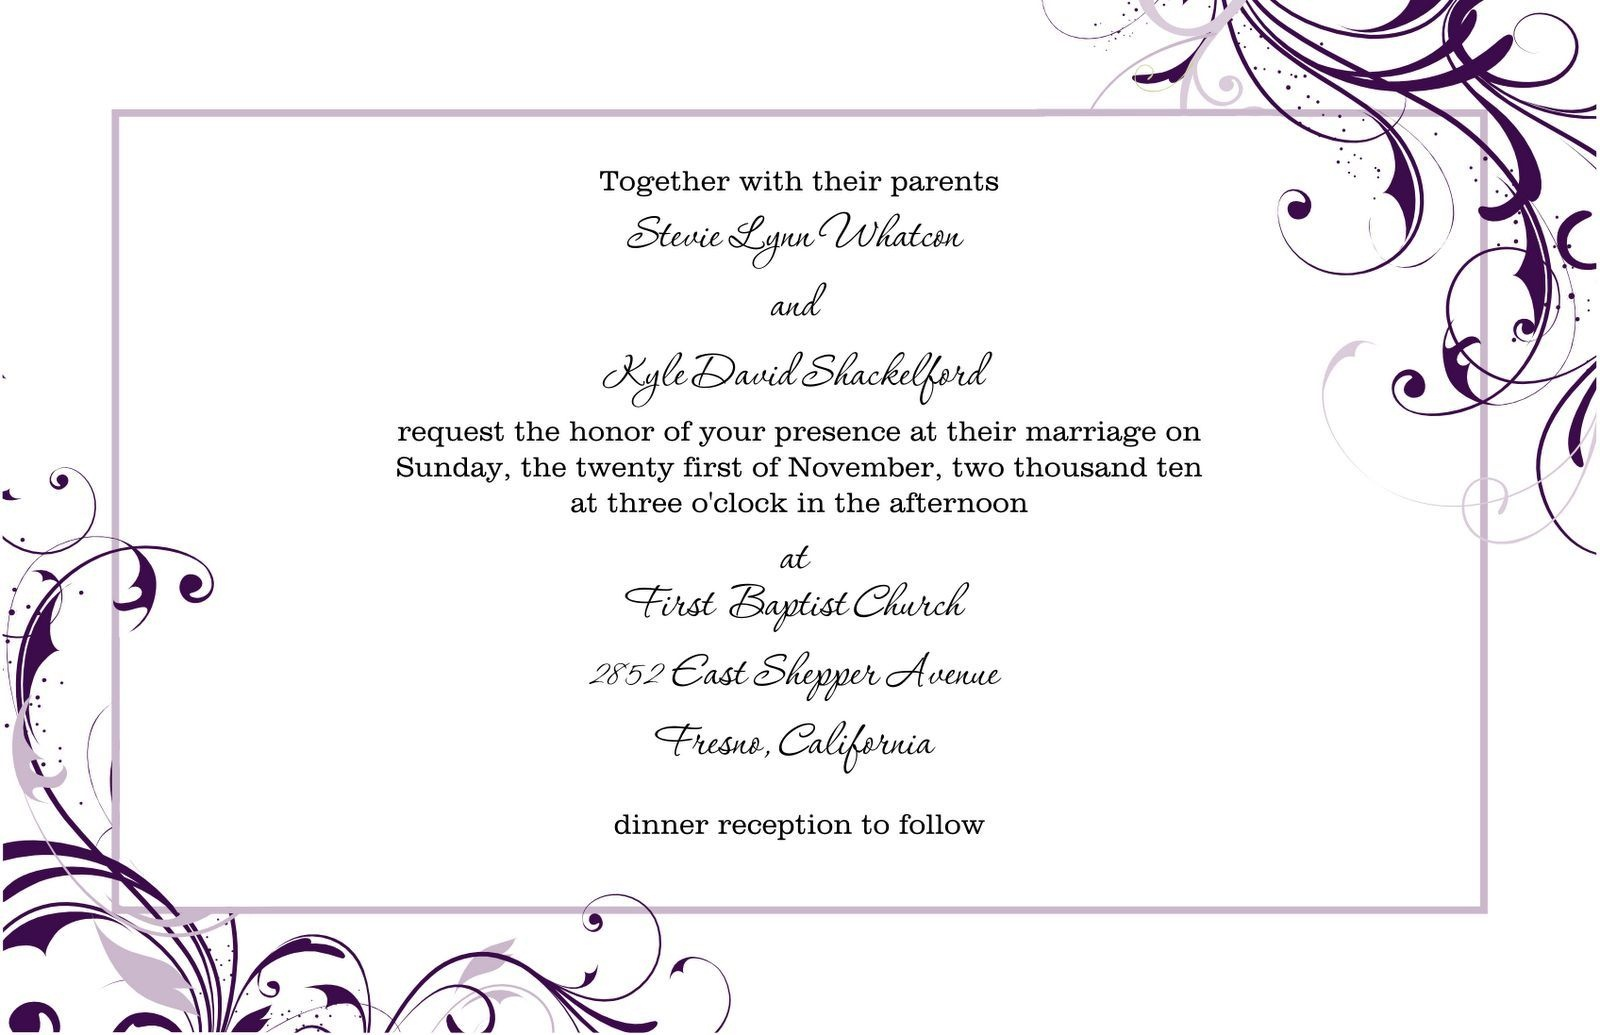 Pinmarina On Wedding Invitation Letter In 2019 | Free Wedding - Free Printable Wedding Invitation Templates For Word